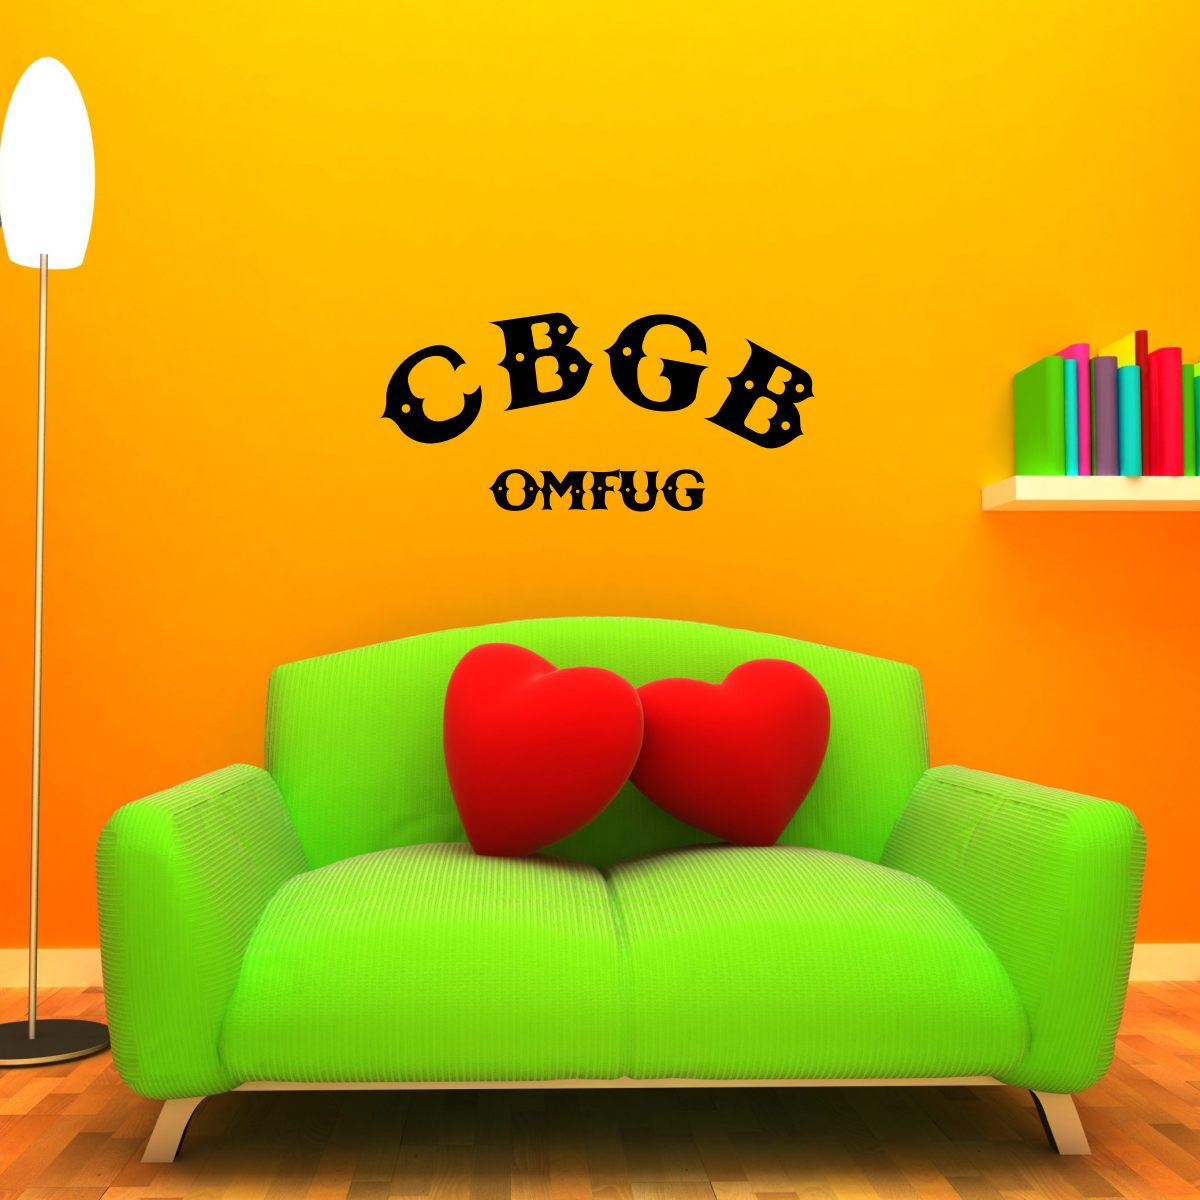 cbgb wall decal large mural rock band sticker nyc wall decals cbgb wall decal large mural rock band sticker nyc